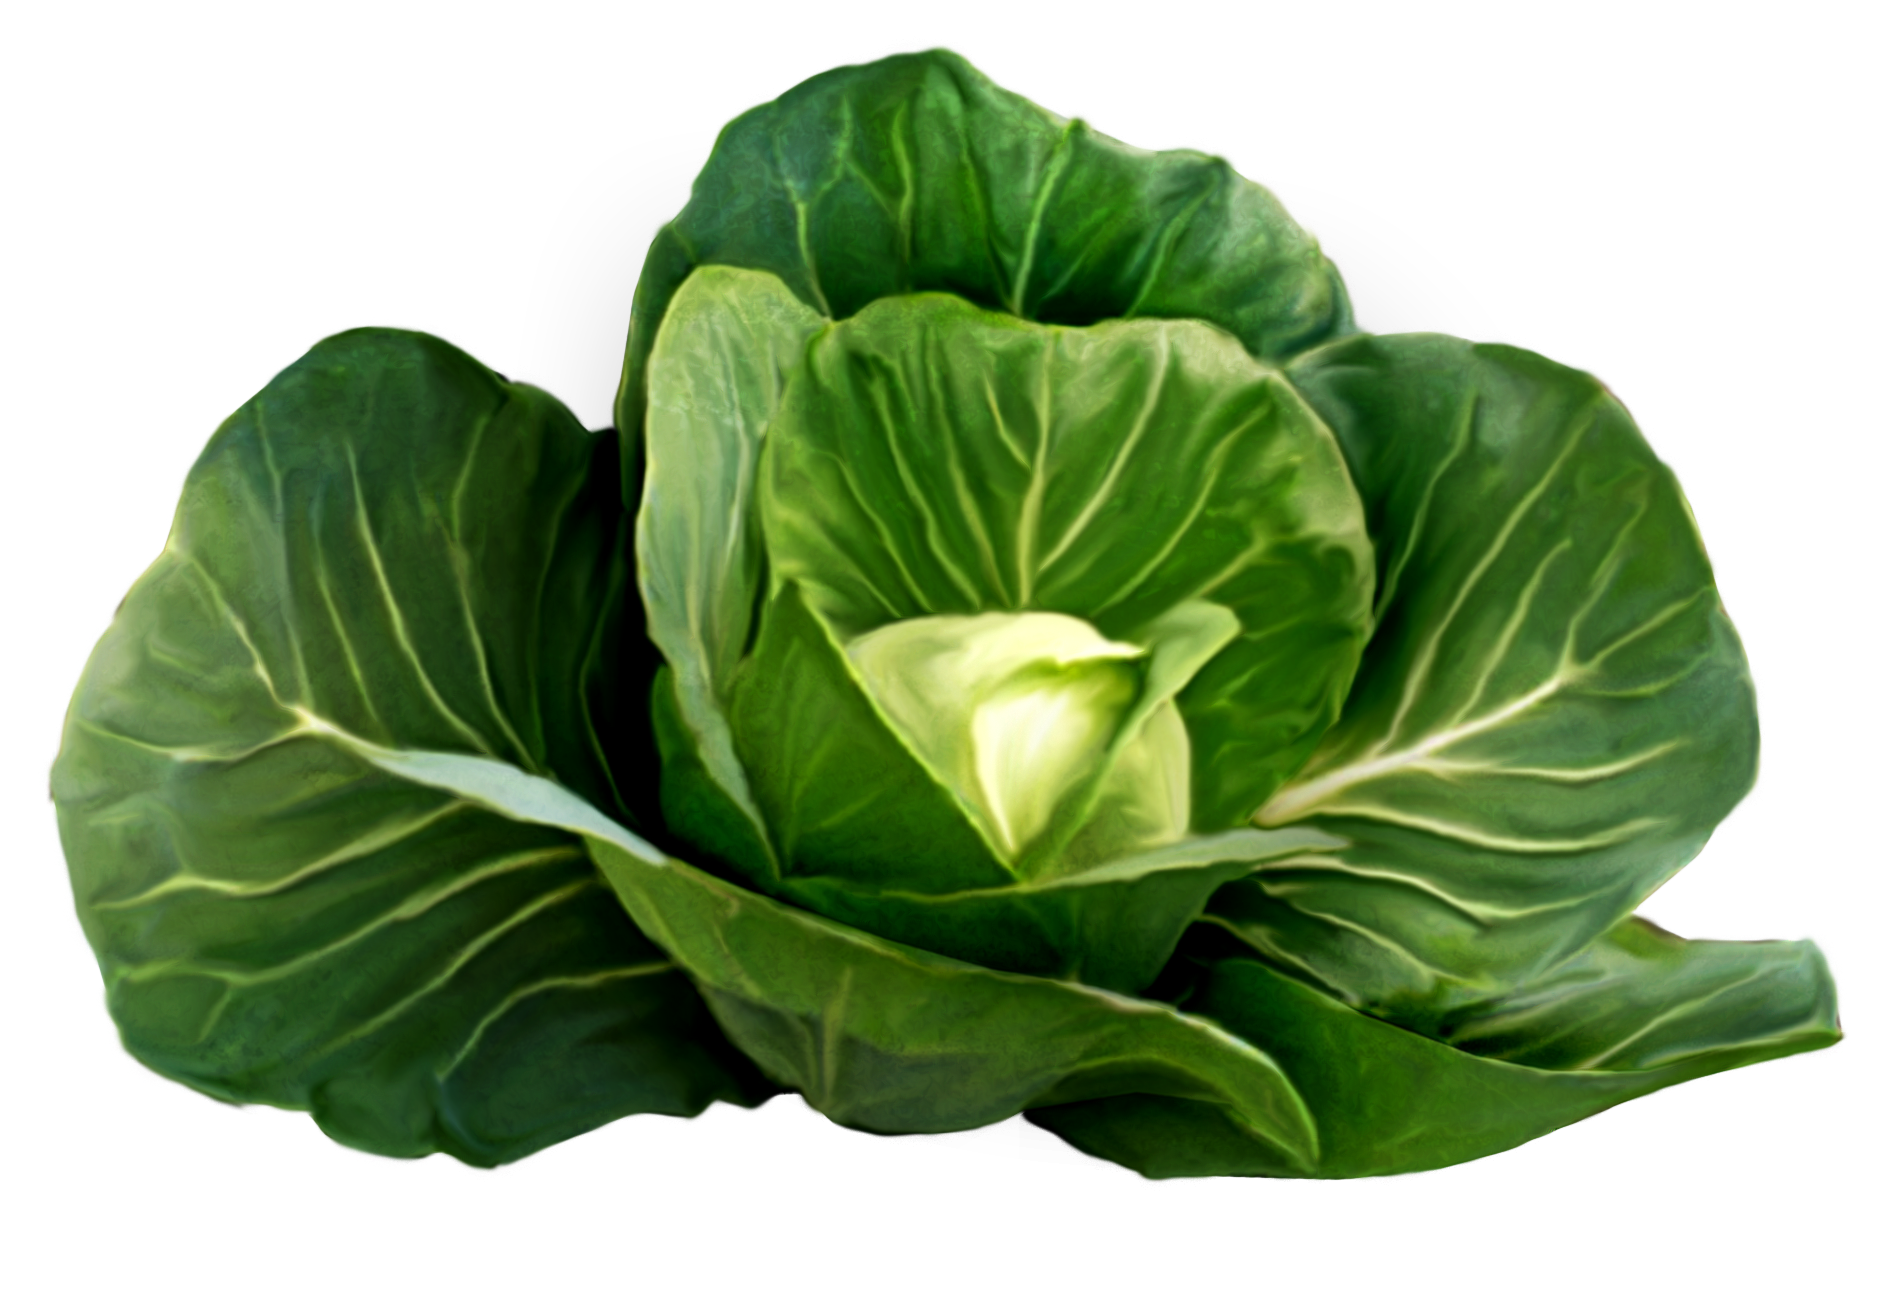 Picture gallery yopriceville high. Vegetables clipart cabbage